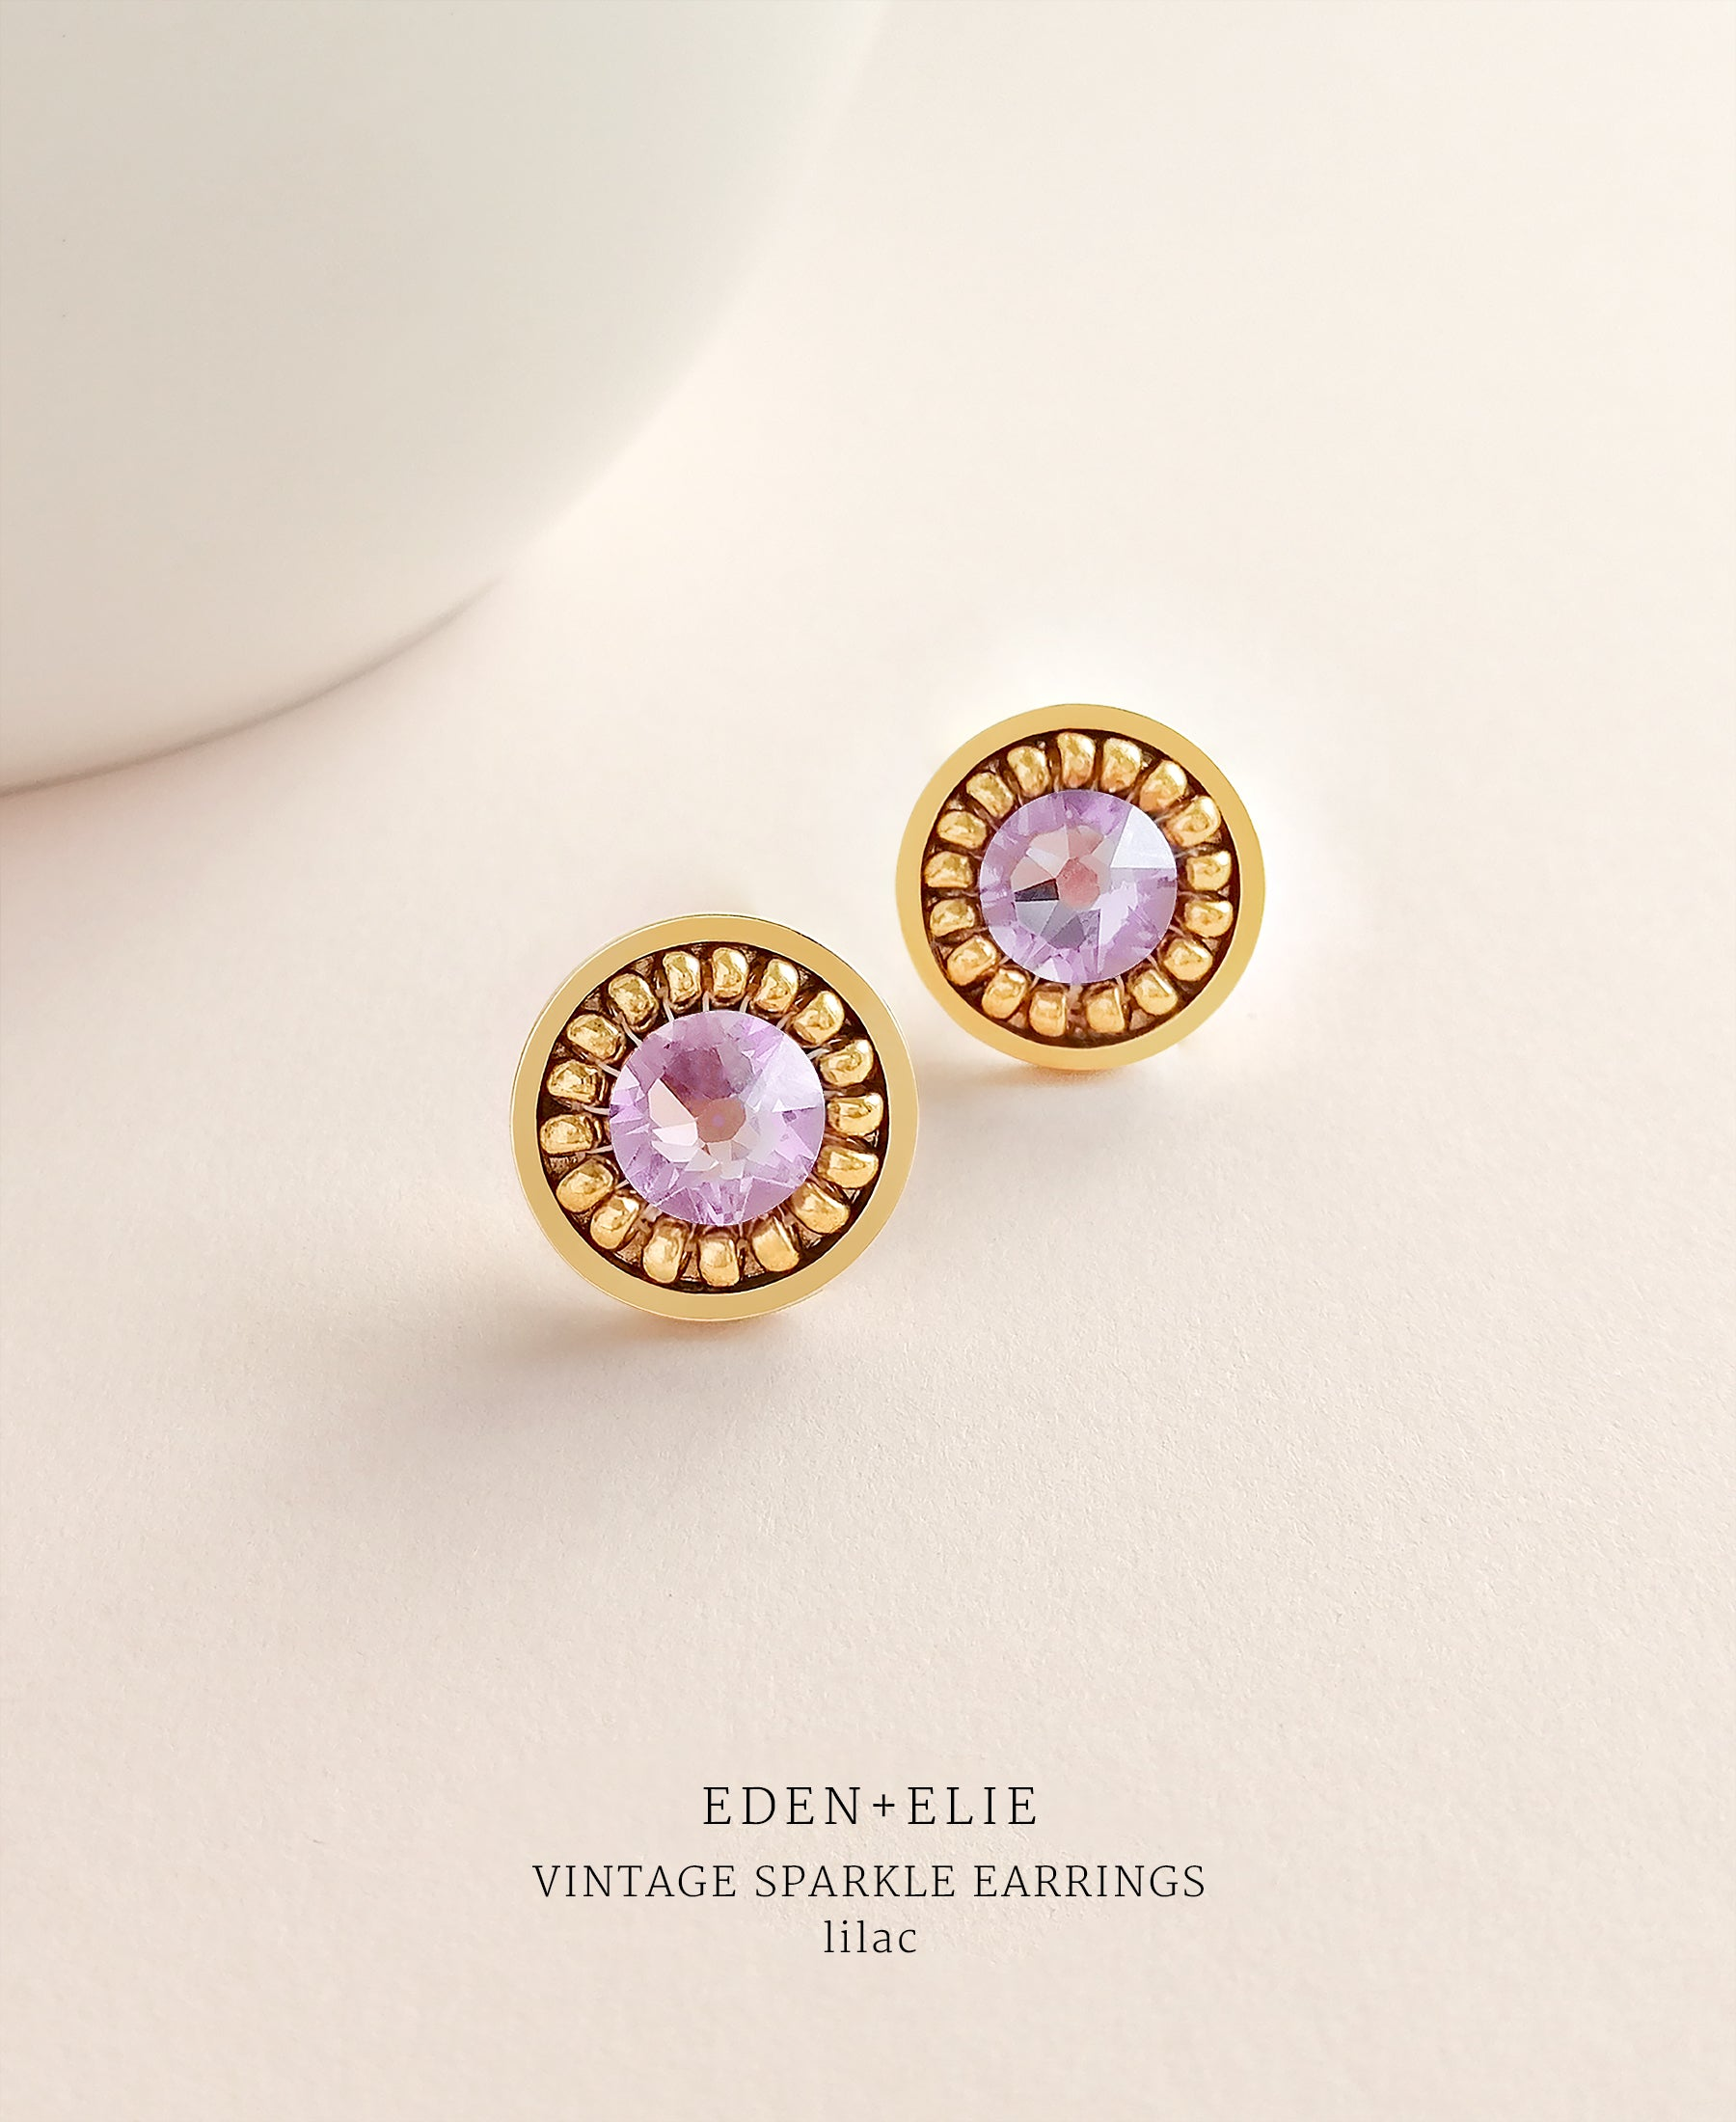 EDEN + ELIE gold plated jewelry Vintage Sparkle stud earrings - lilac purple